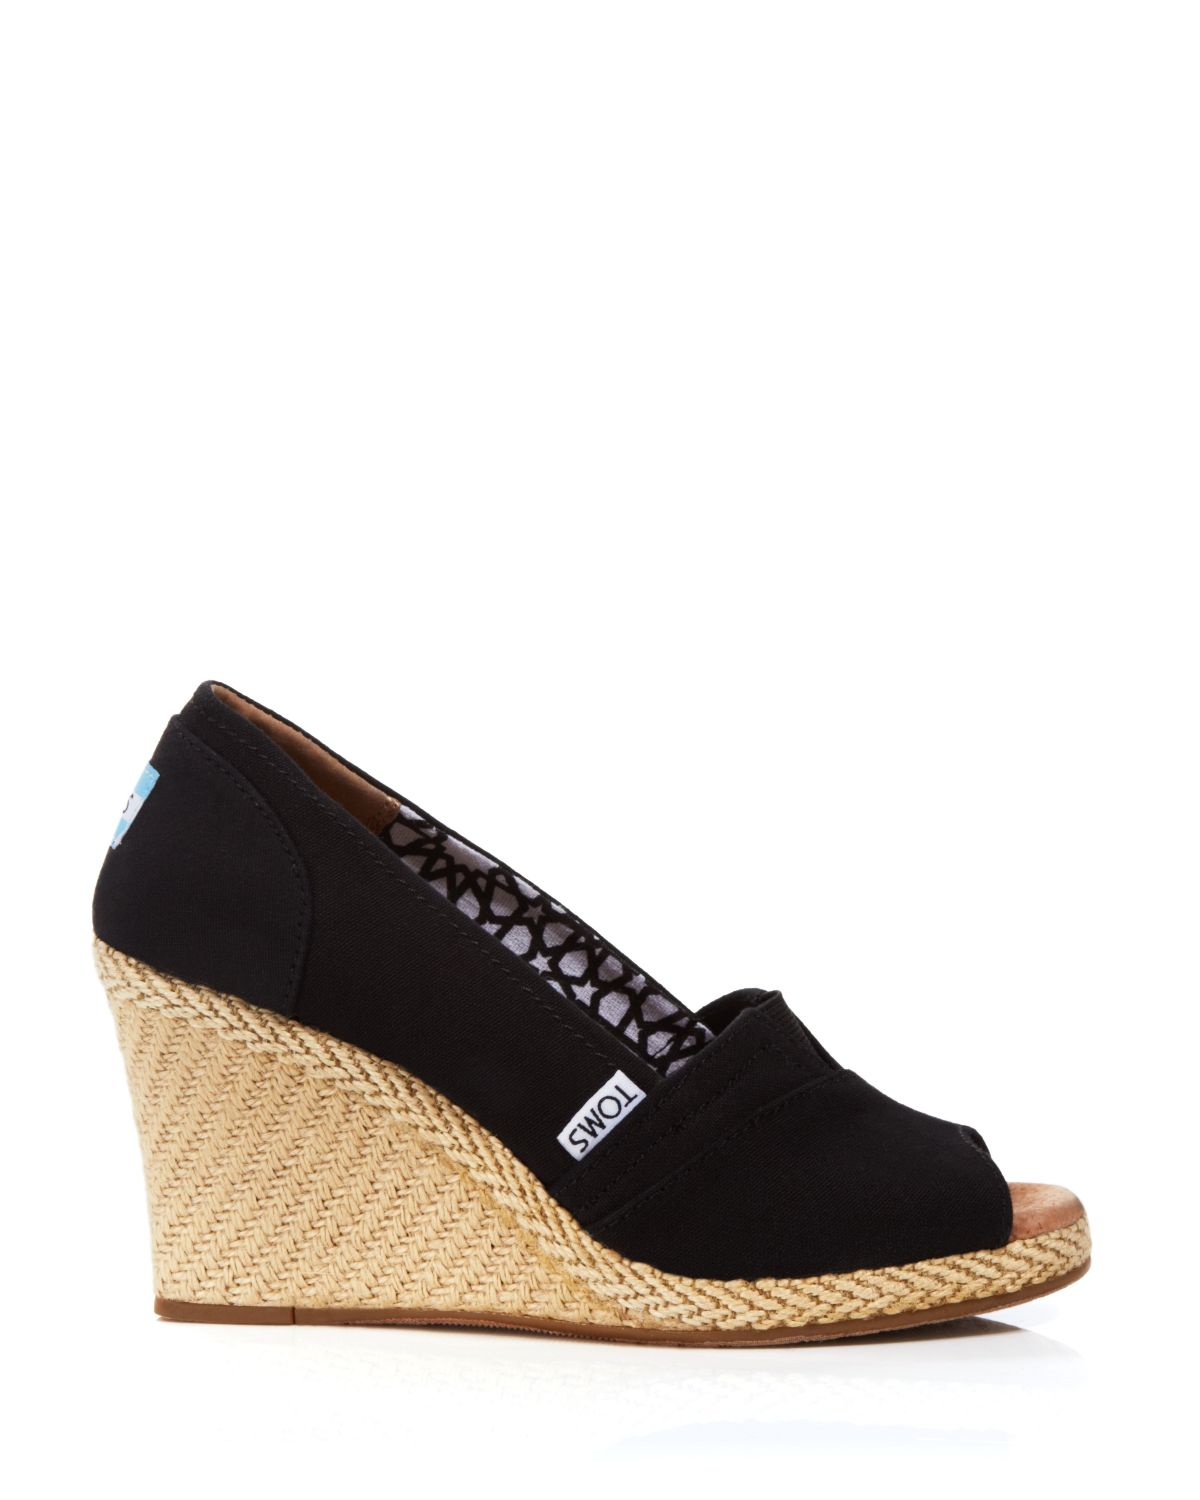 toms espadrille wedge sandals classic in brown lyst